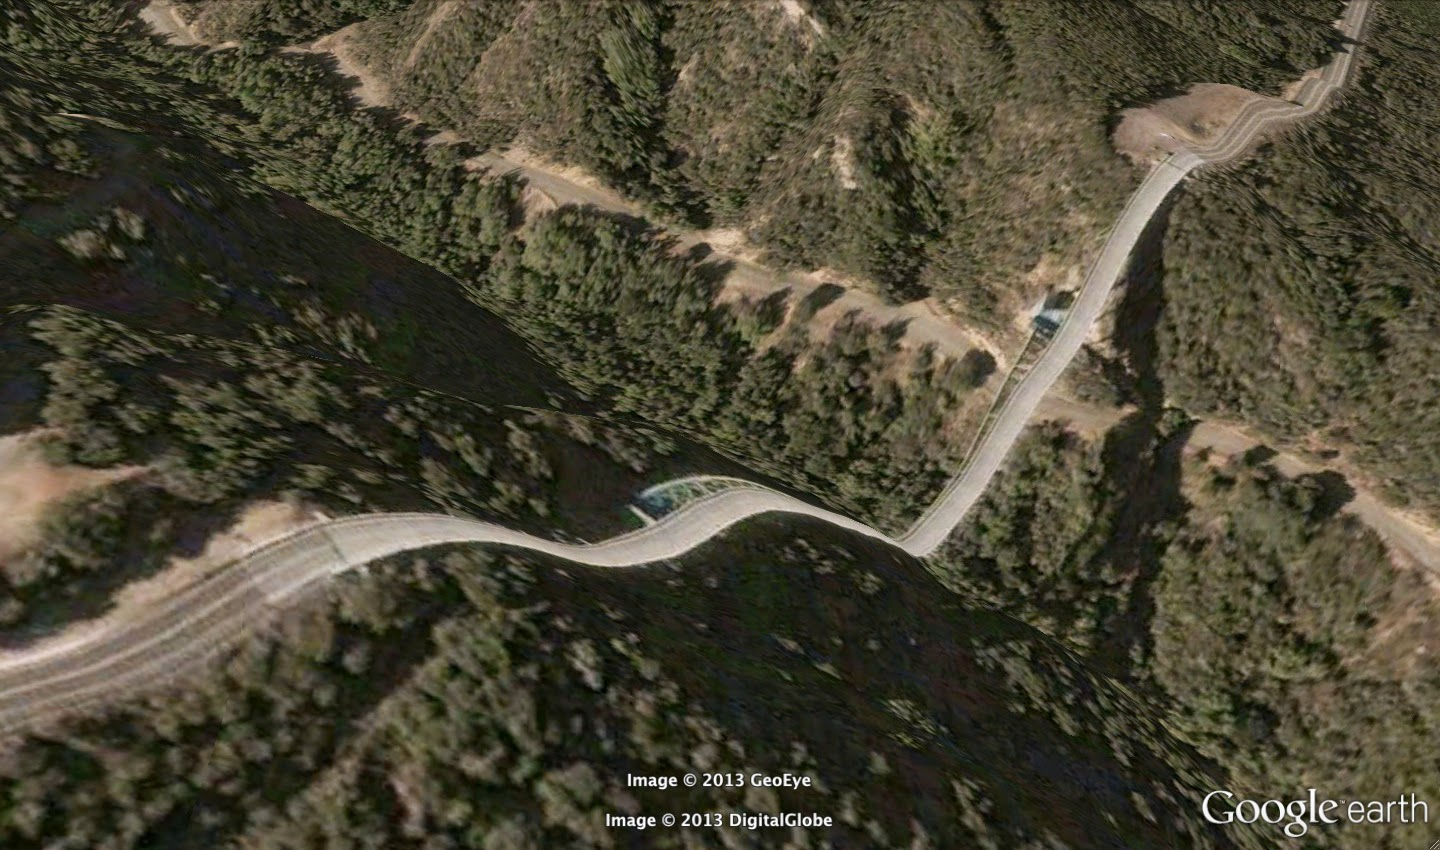 05-Cold-Spring-Canyon-Clement-Valla-Postcards-From-Google-Earth-www-designstack-co